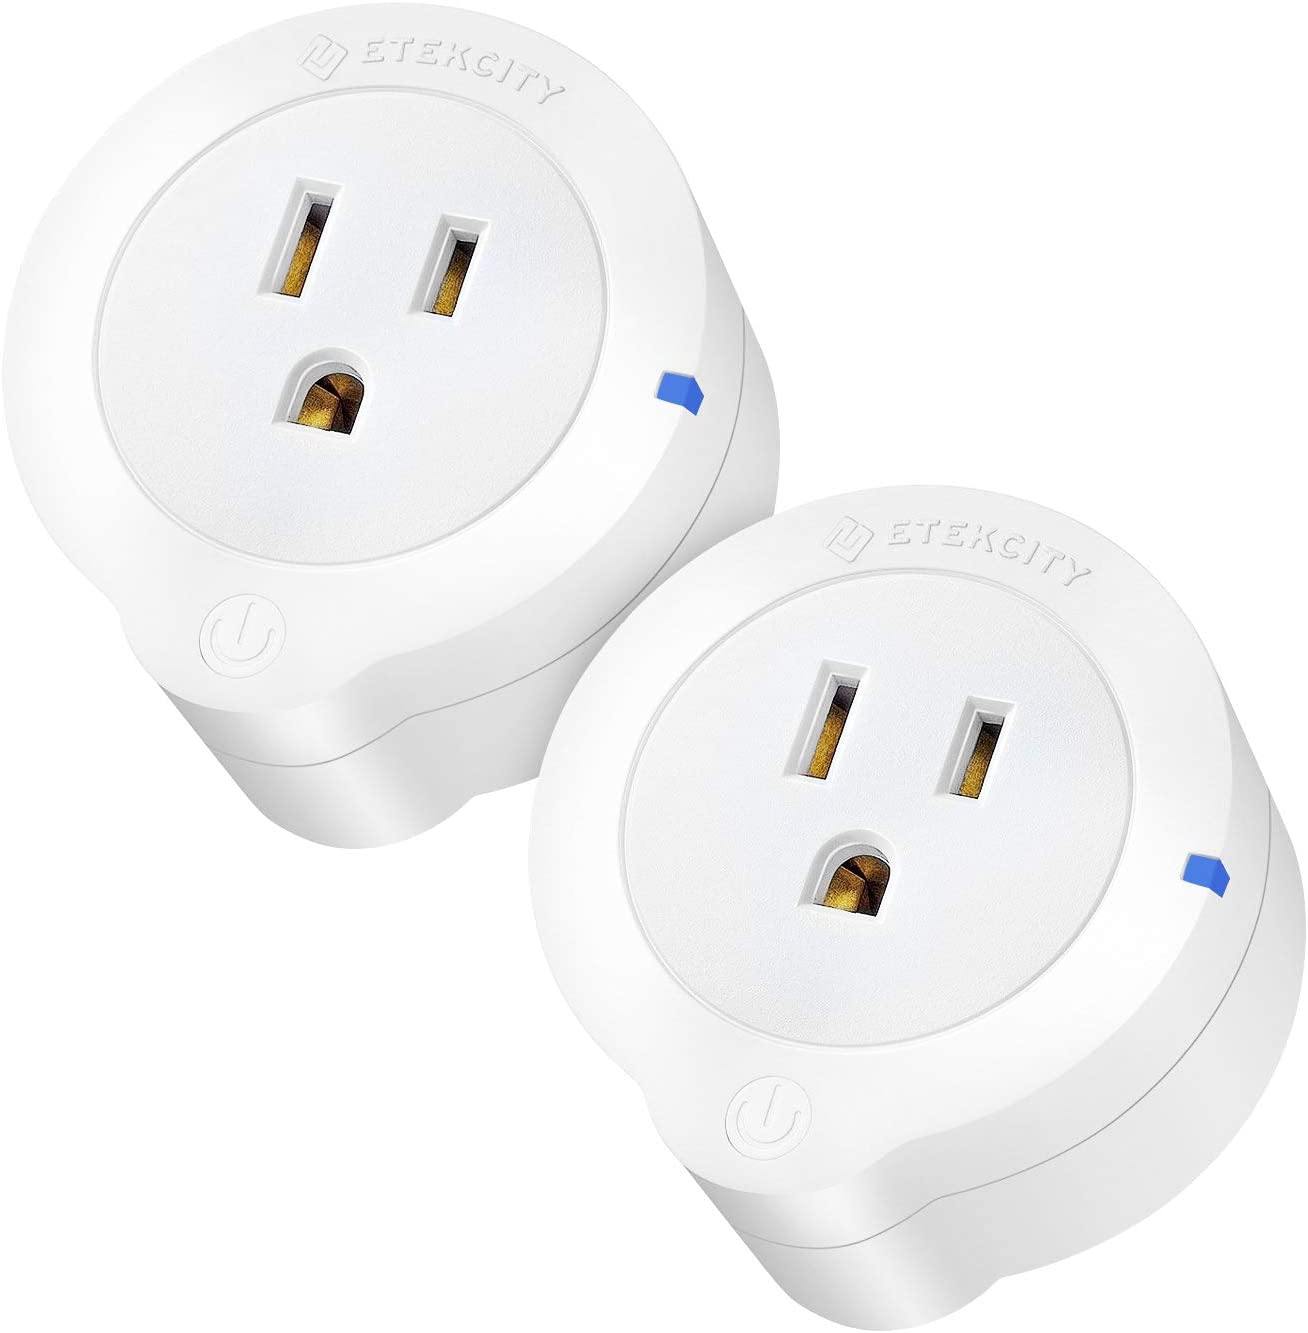 Etekcity Smart Plug, Works with Alexa, Google Home and IFTTT, Easy Setup, Energy Monitoring WiFi Outlet with Overheat Protection, ETL Listed, FCC Certified (Upgraded 2 Pack)